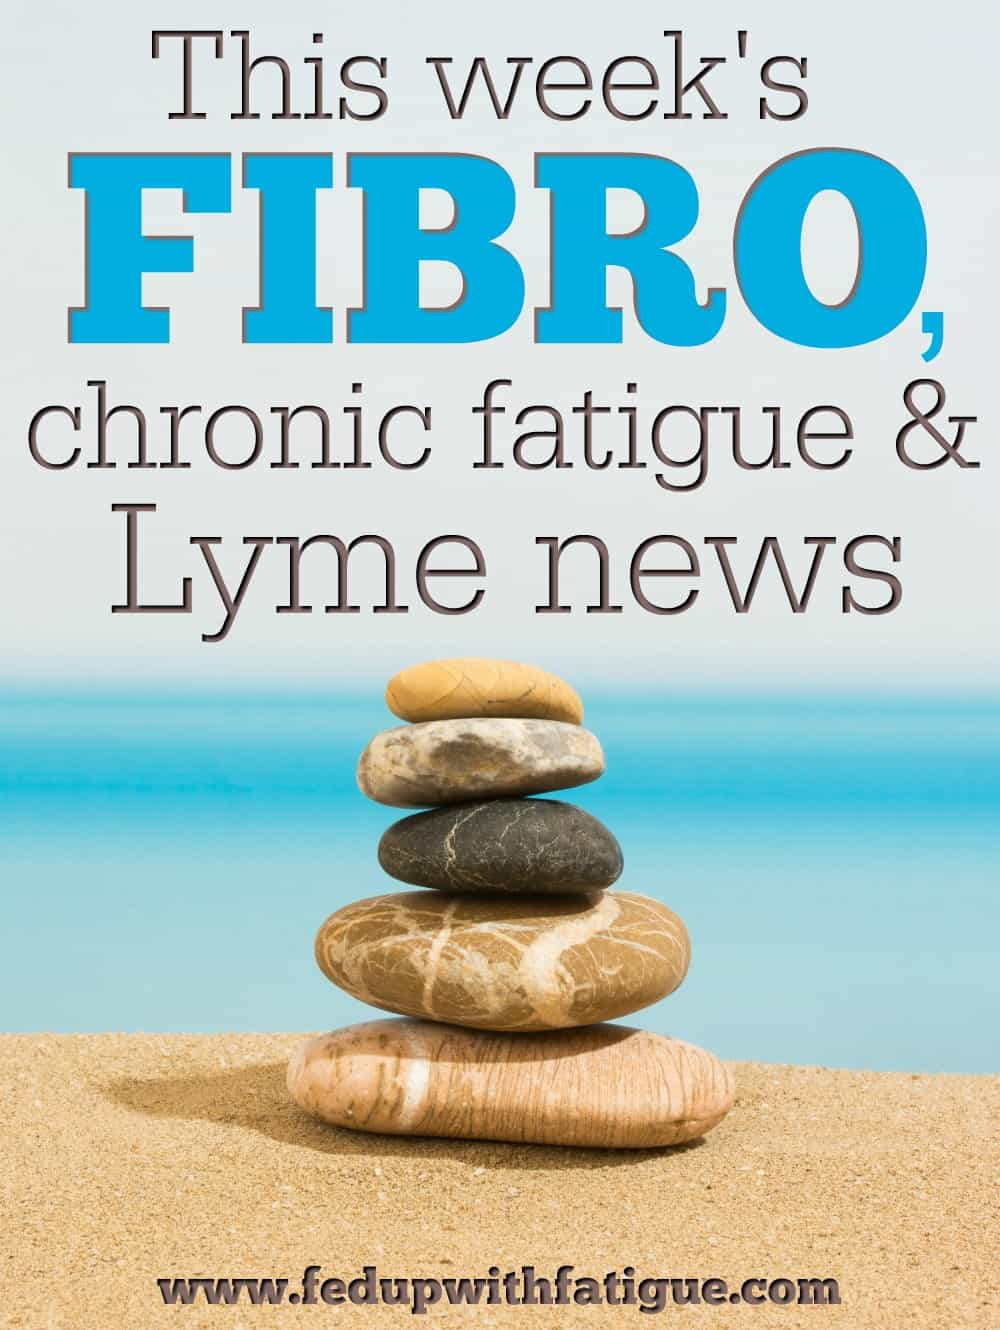 August 25, 2017 fibromyalgia, chronic fatigue and Lyme news | Fed Up with Fatigue